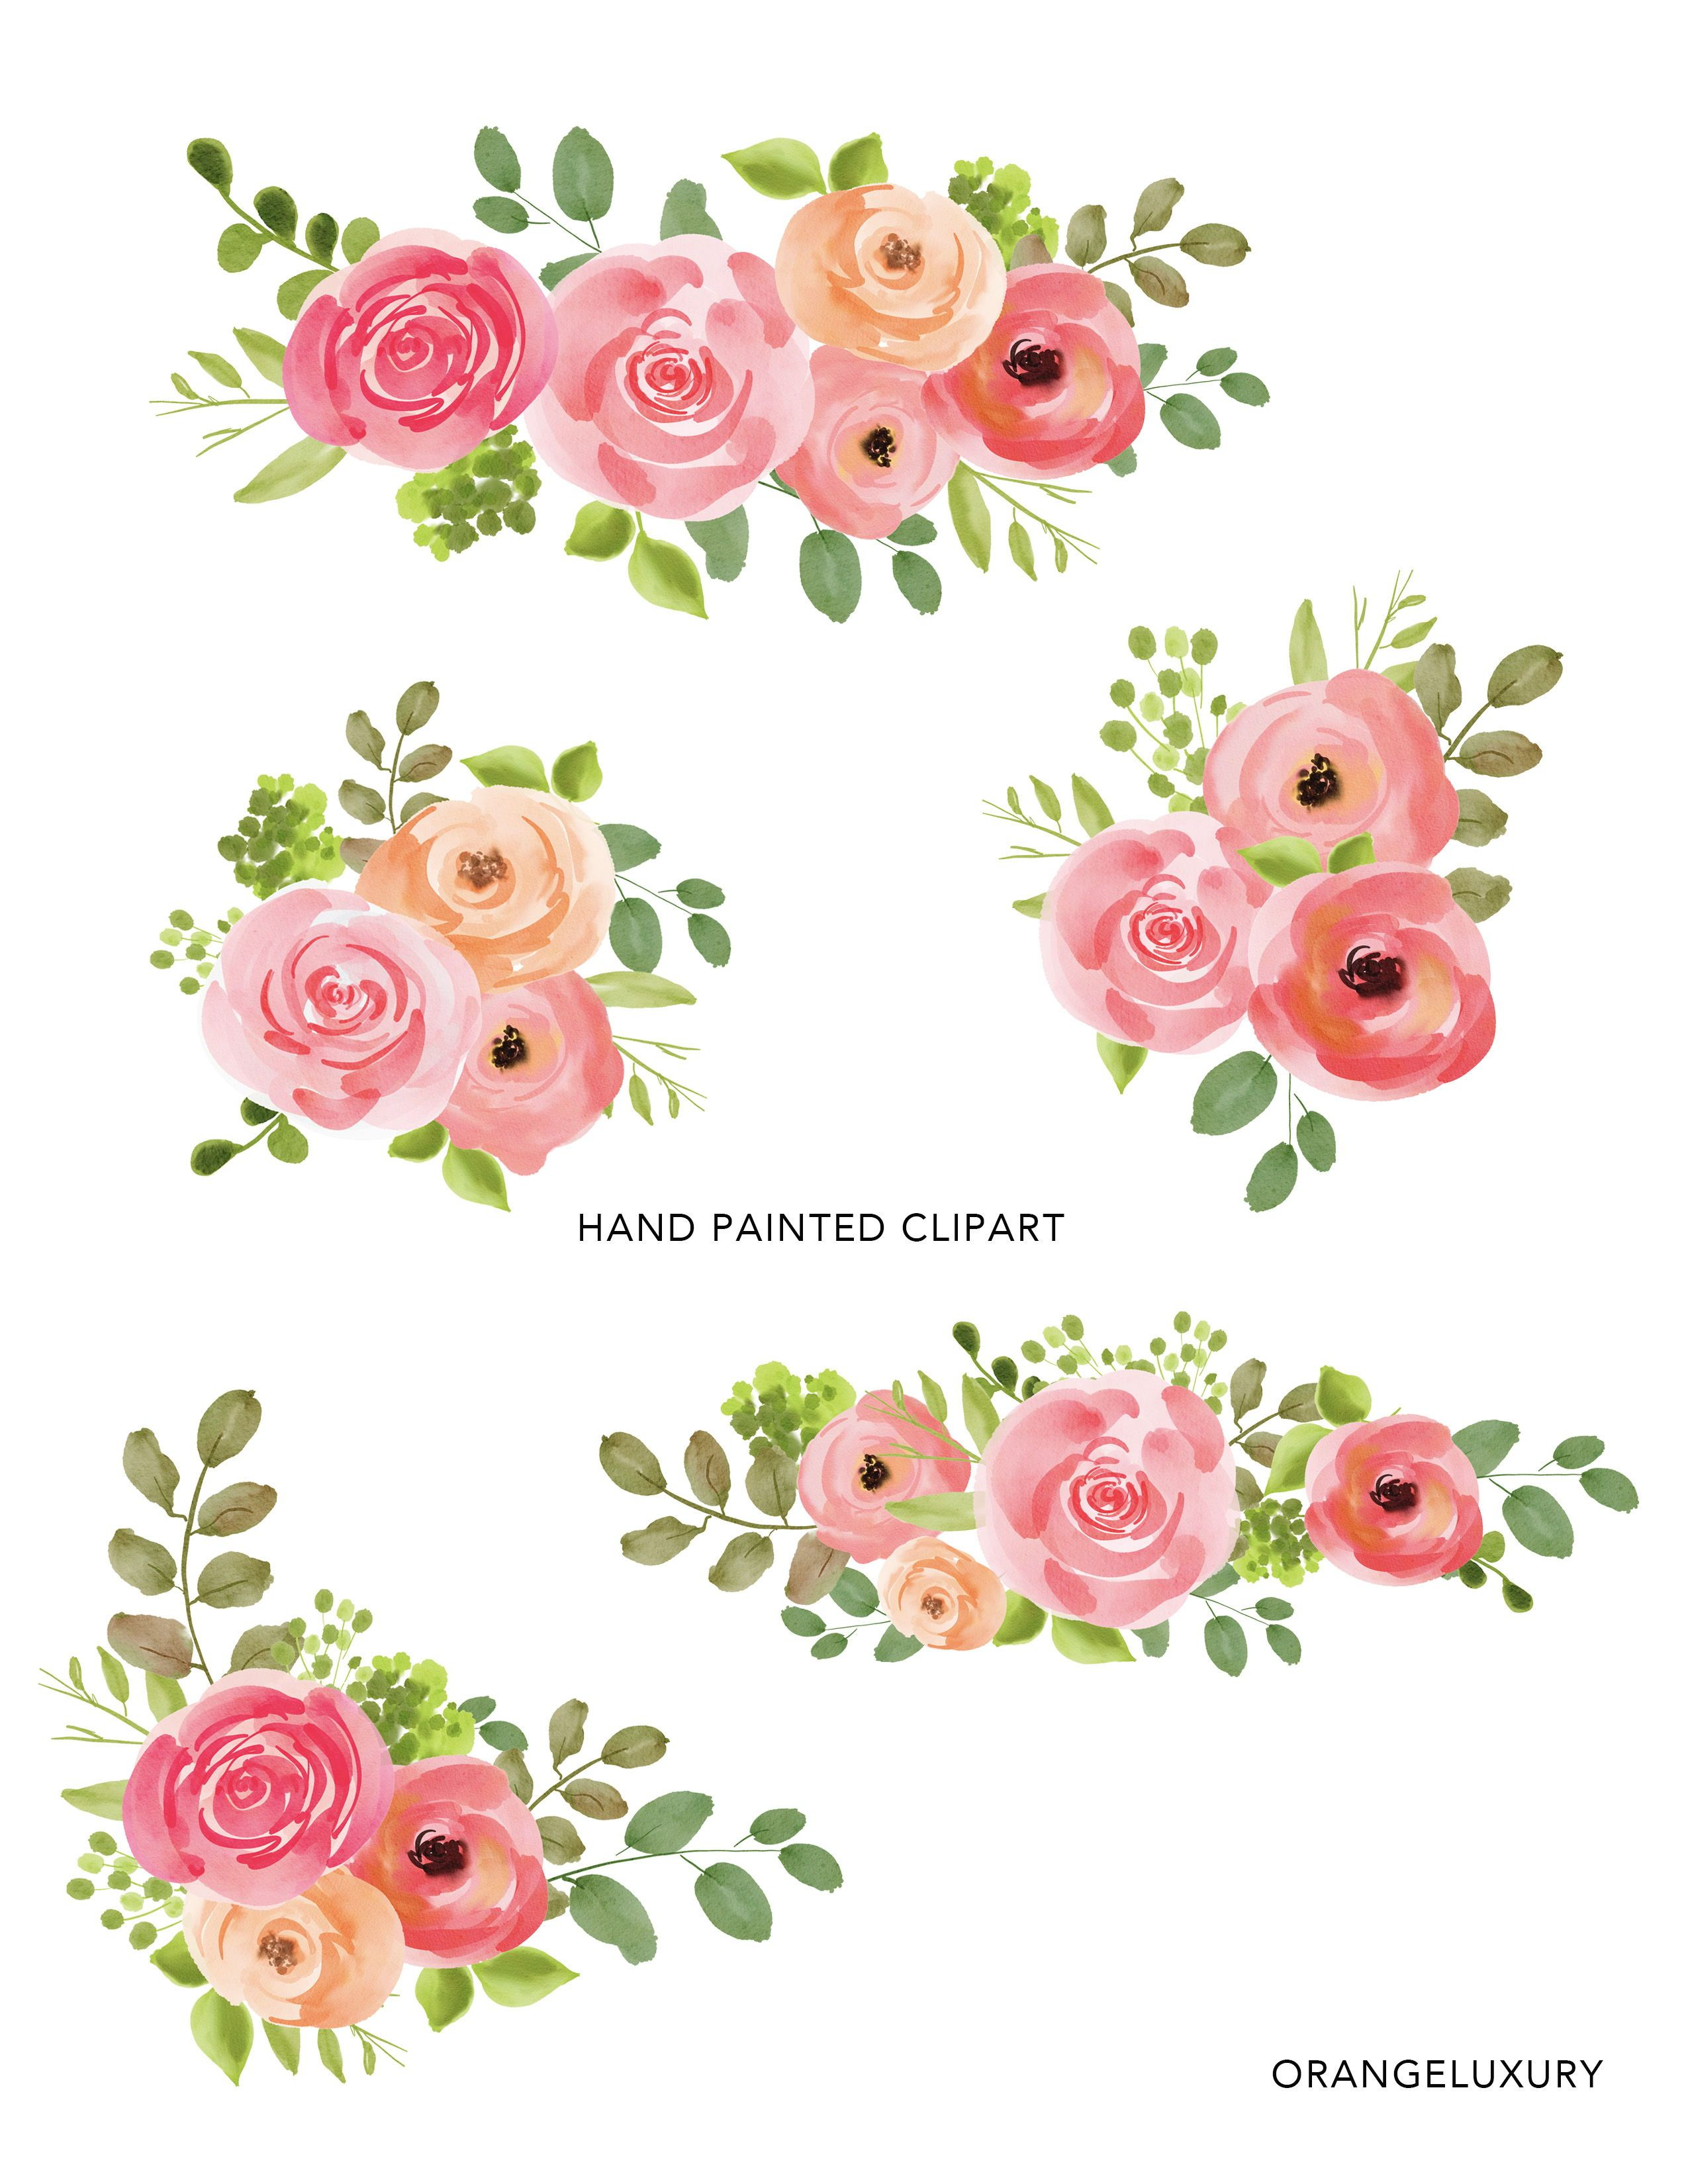 Simple Watercolor Flowers Clipart Roses Floral Clip Art Leaves Branch Bouquet Png Digital Download Hand Painted Wedding Invitation In 2021 Simple Watercolor Flowers Easy Flower Painting Free Watercolor Flowers